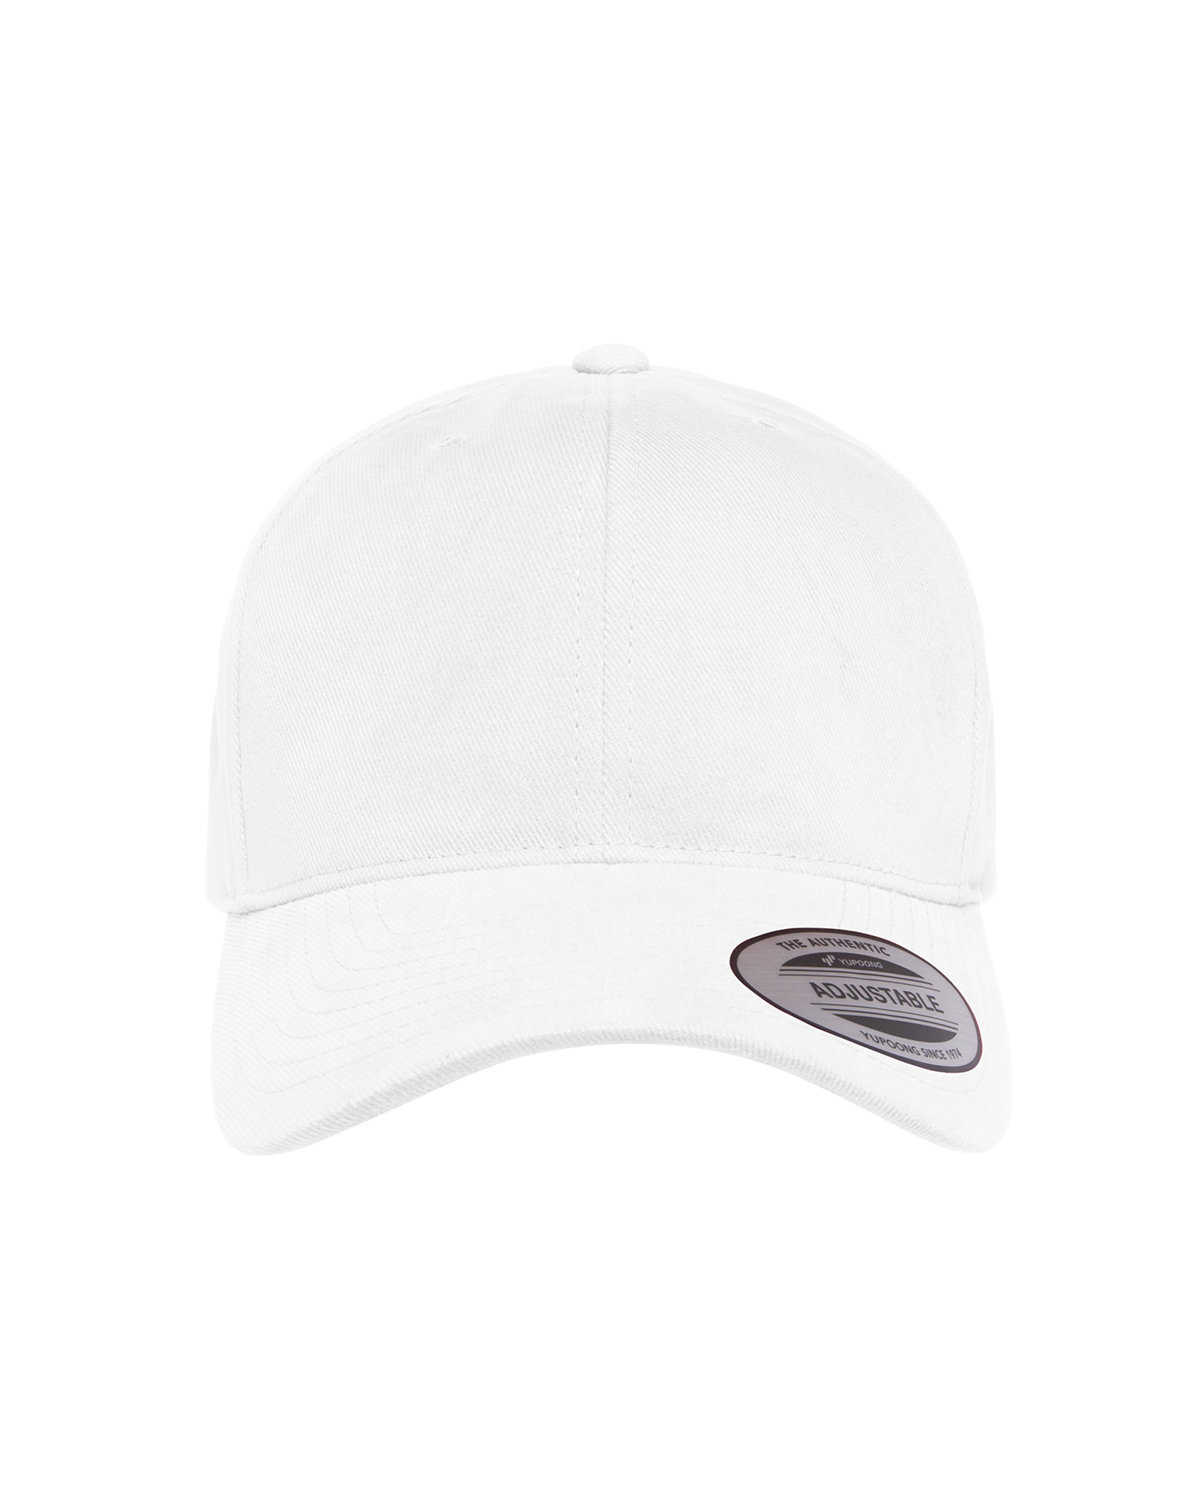 Yupoong Adult Brushed Cotton Twill Mid-Profile Cap WHITE